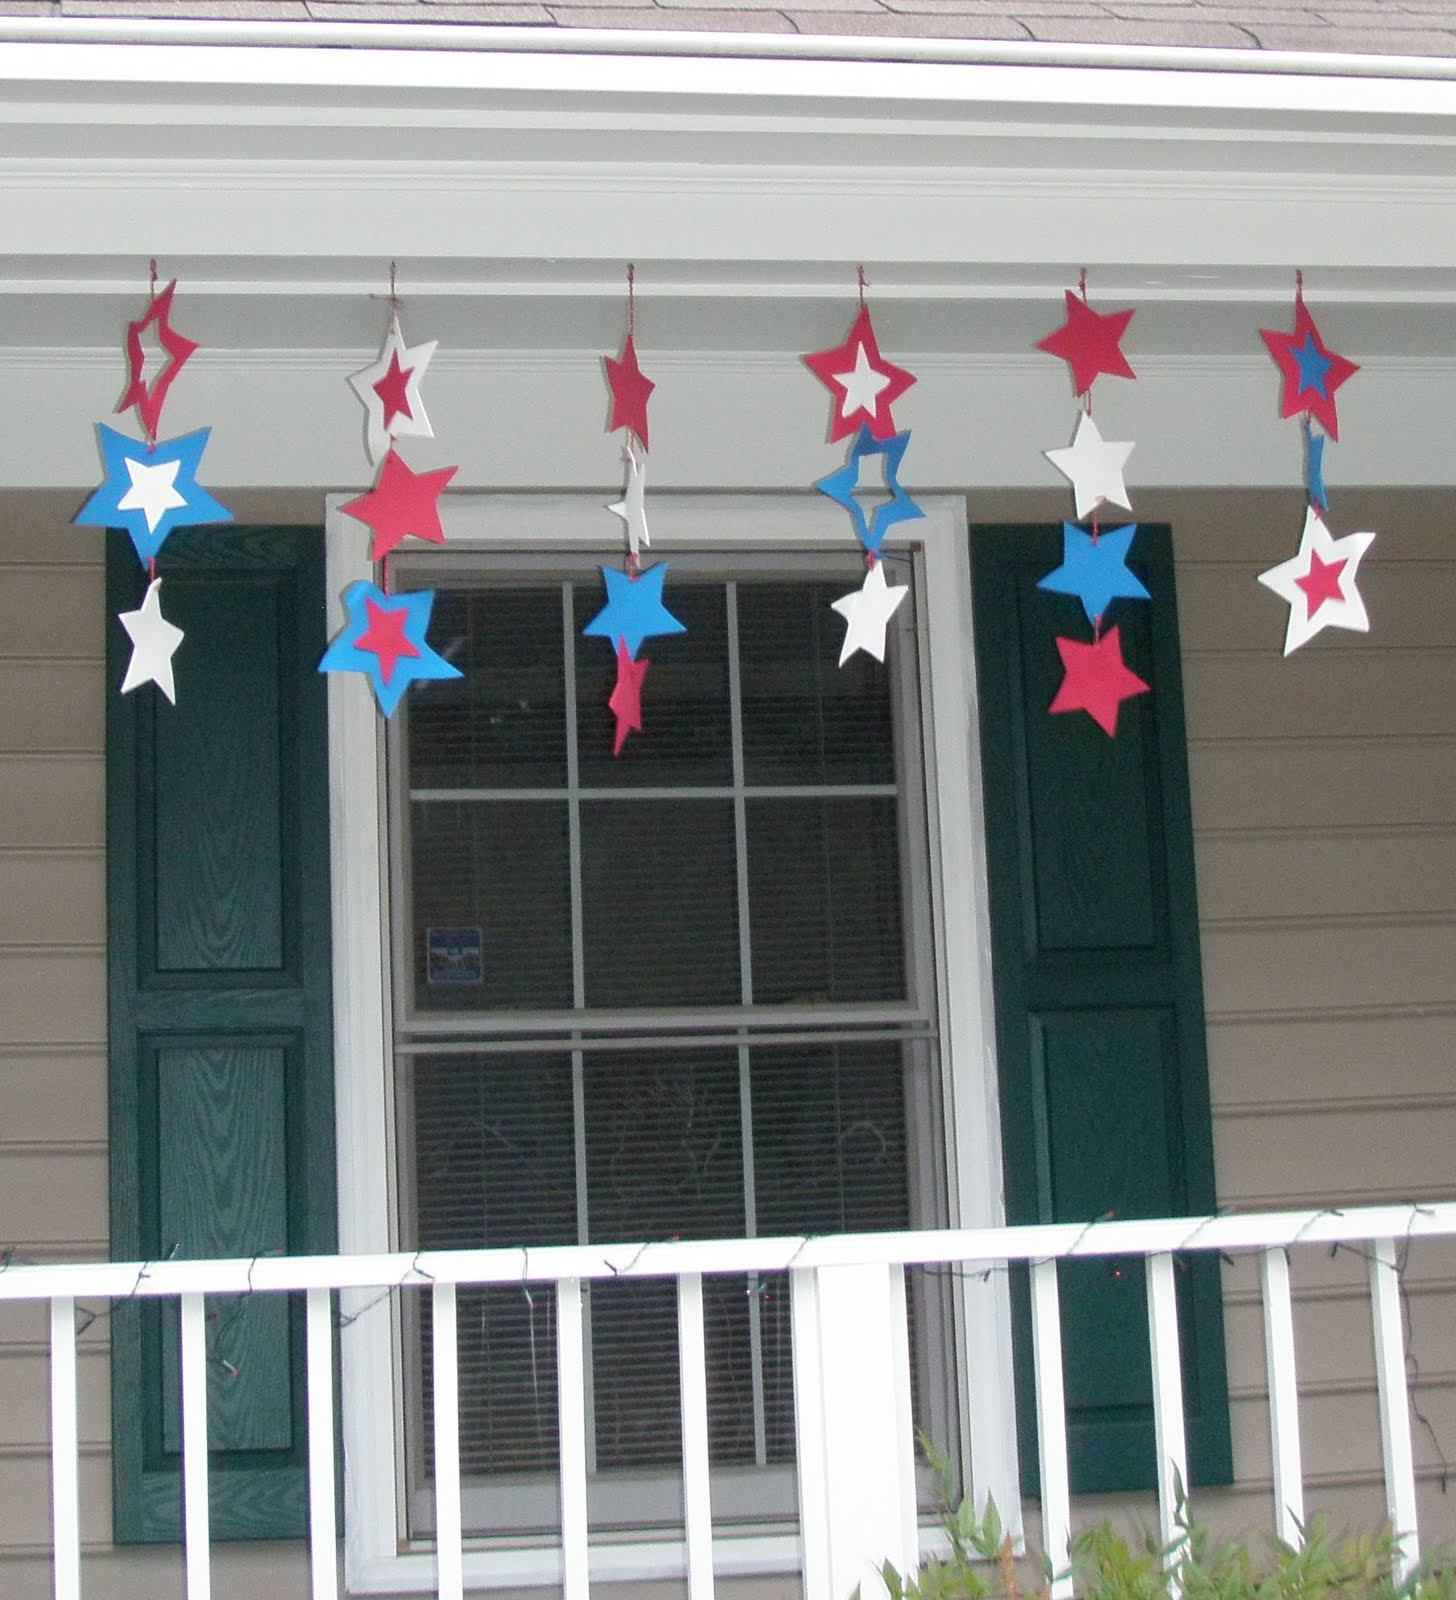 crack of dawn crafts spreading patriotic cheer with craft foam a 4th of july decoration idea. Black Bedroom Furniture Sets. Home Design Ideas